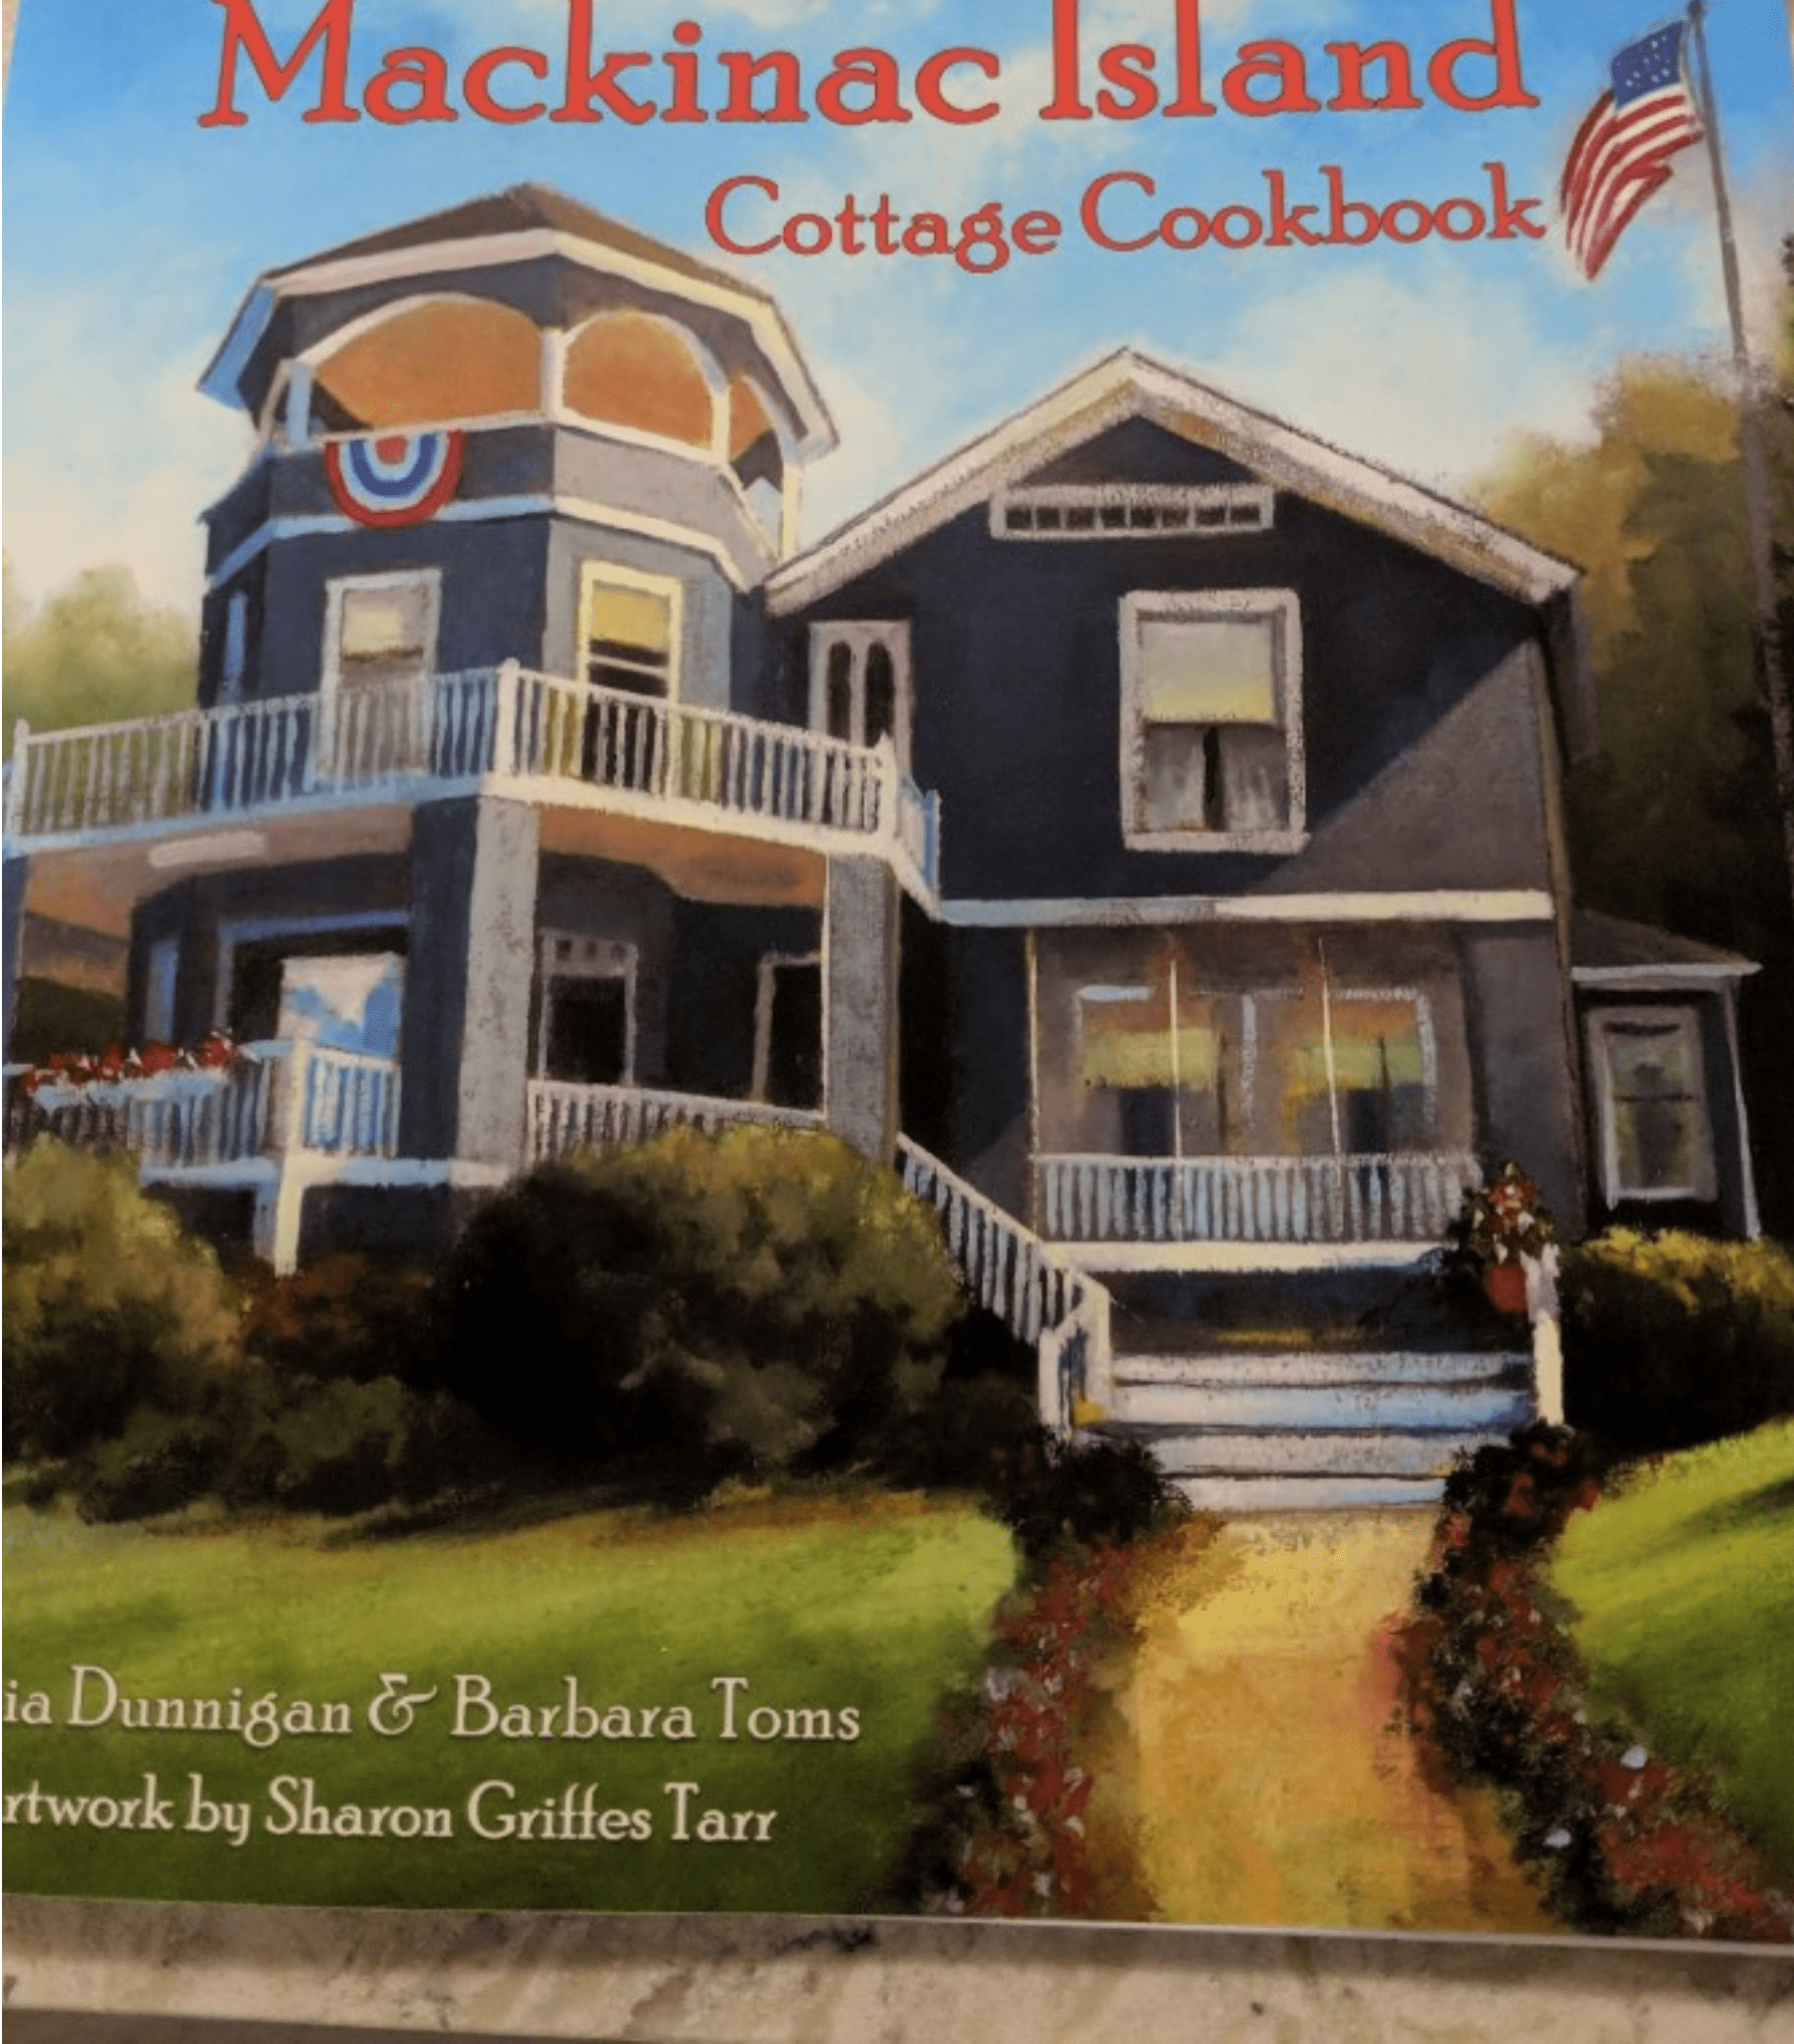 Mackinac Island Cottage Cookbook: Savor Summer All Year Long